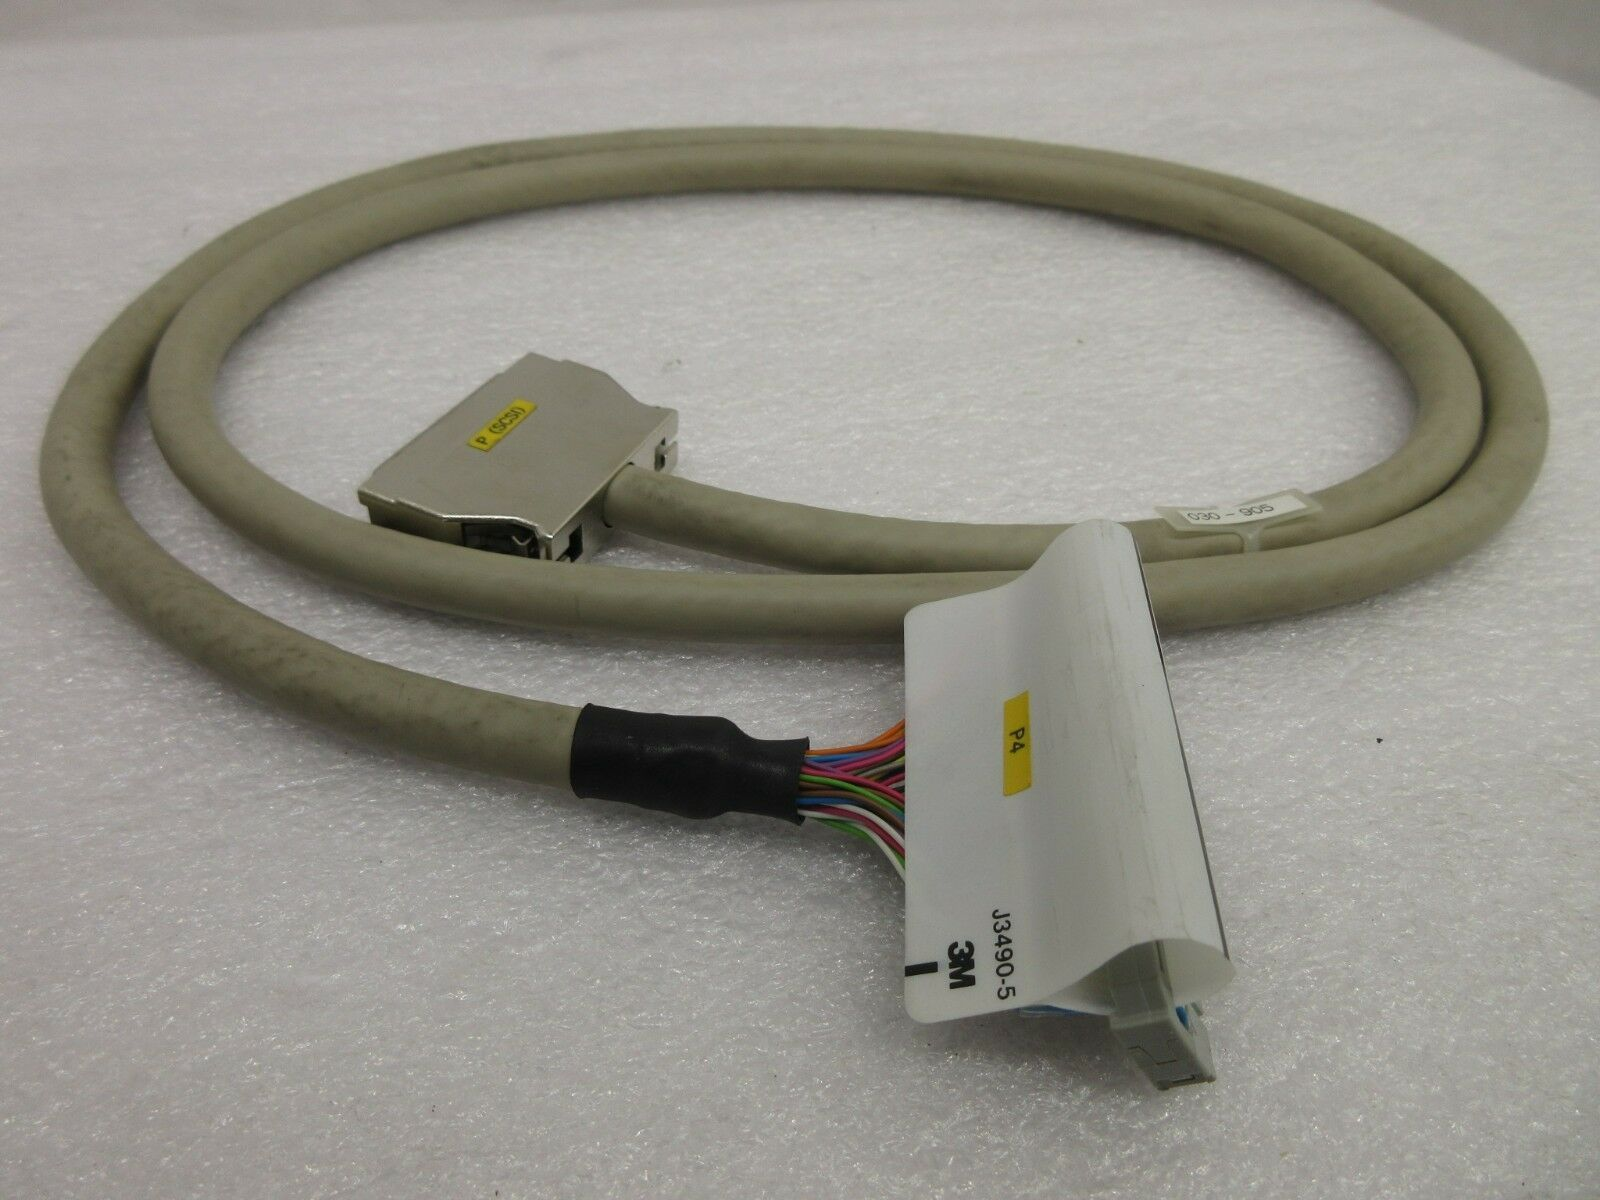 Nikon 030-905 P (SCSI) SG Rack Data Cable NSR-S202A Step-and-Repeat Used Working